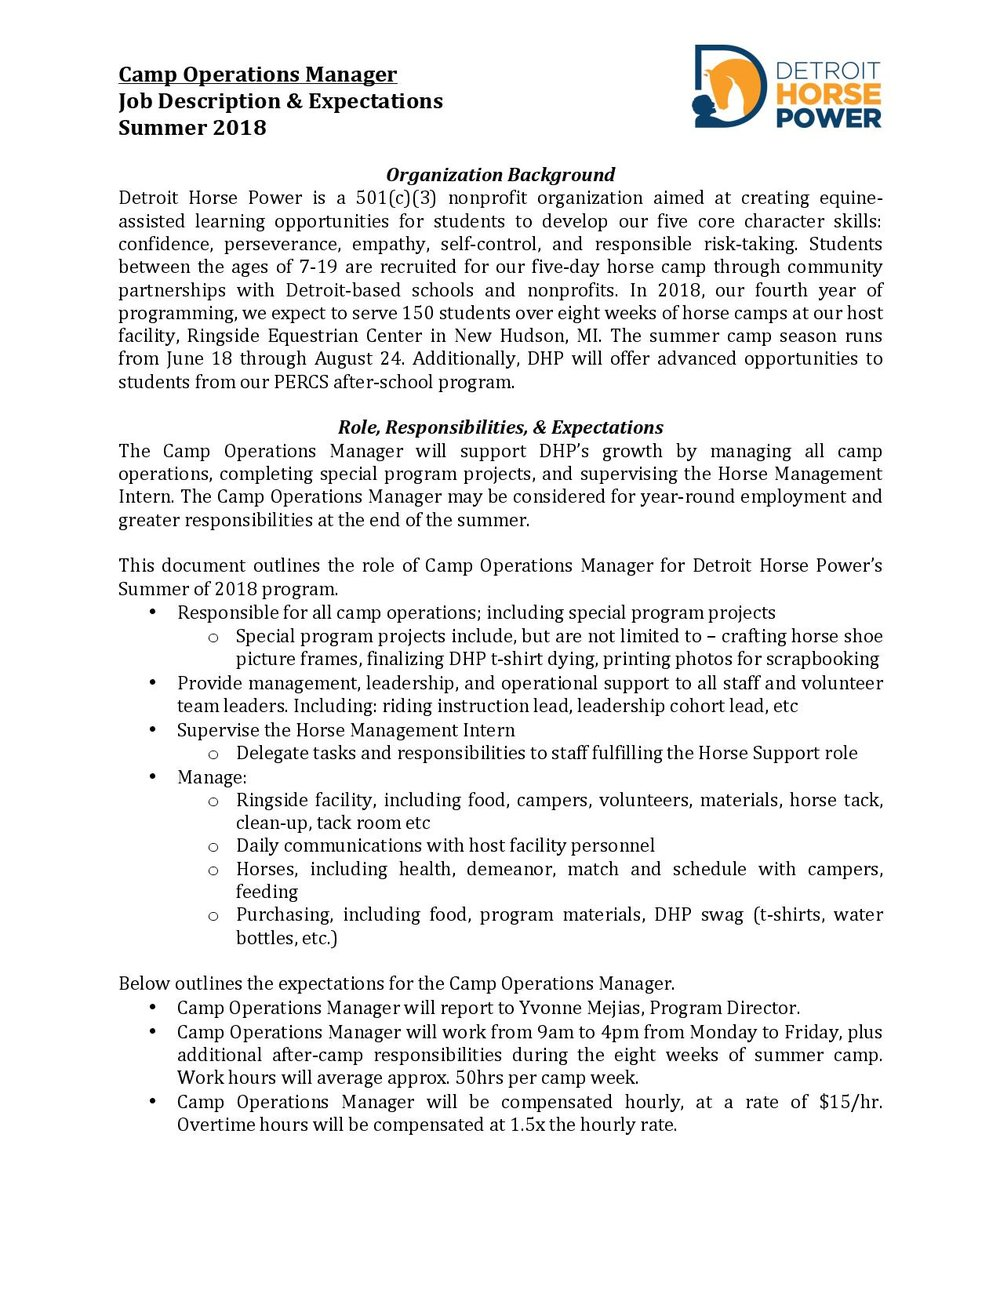 DHP_2018_Camp Operations Manager_Job Description-page-001.jpg